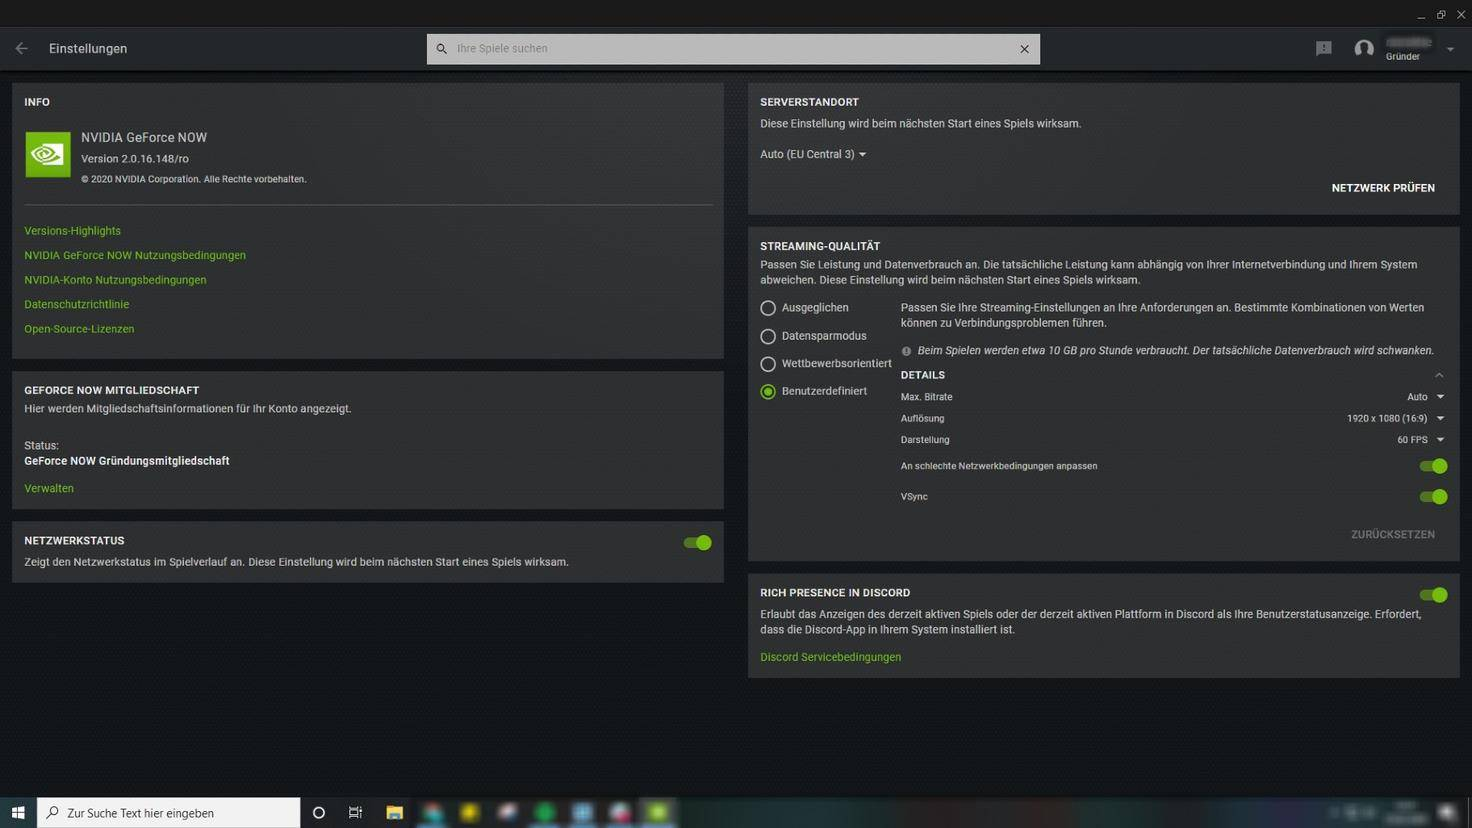 geforce-now-app-screenshot